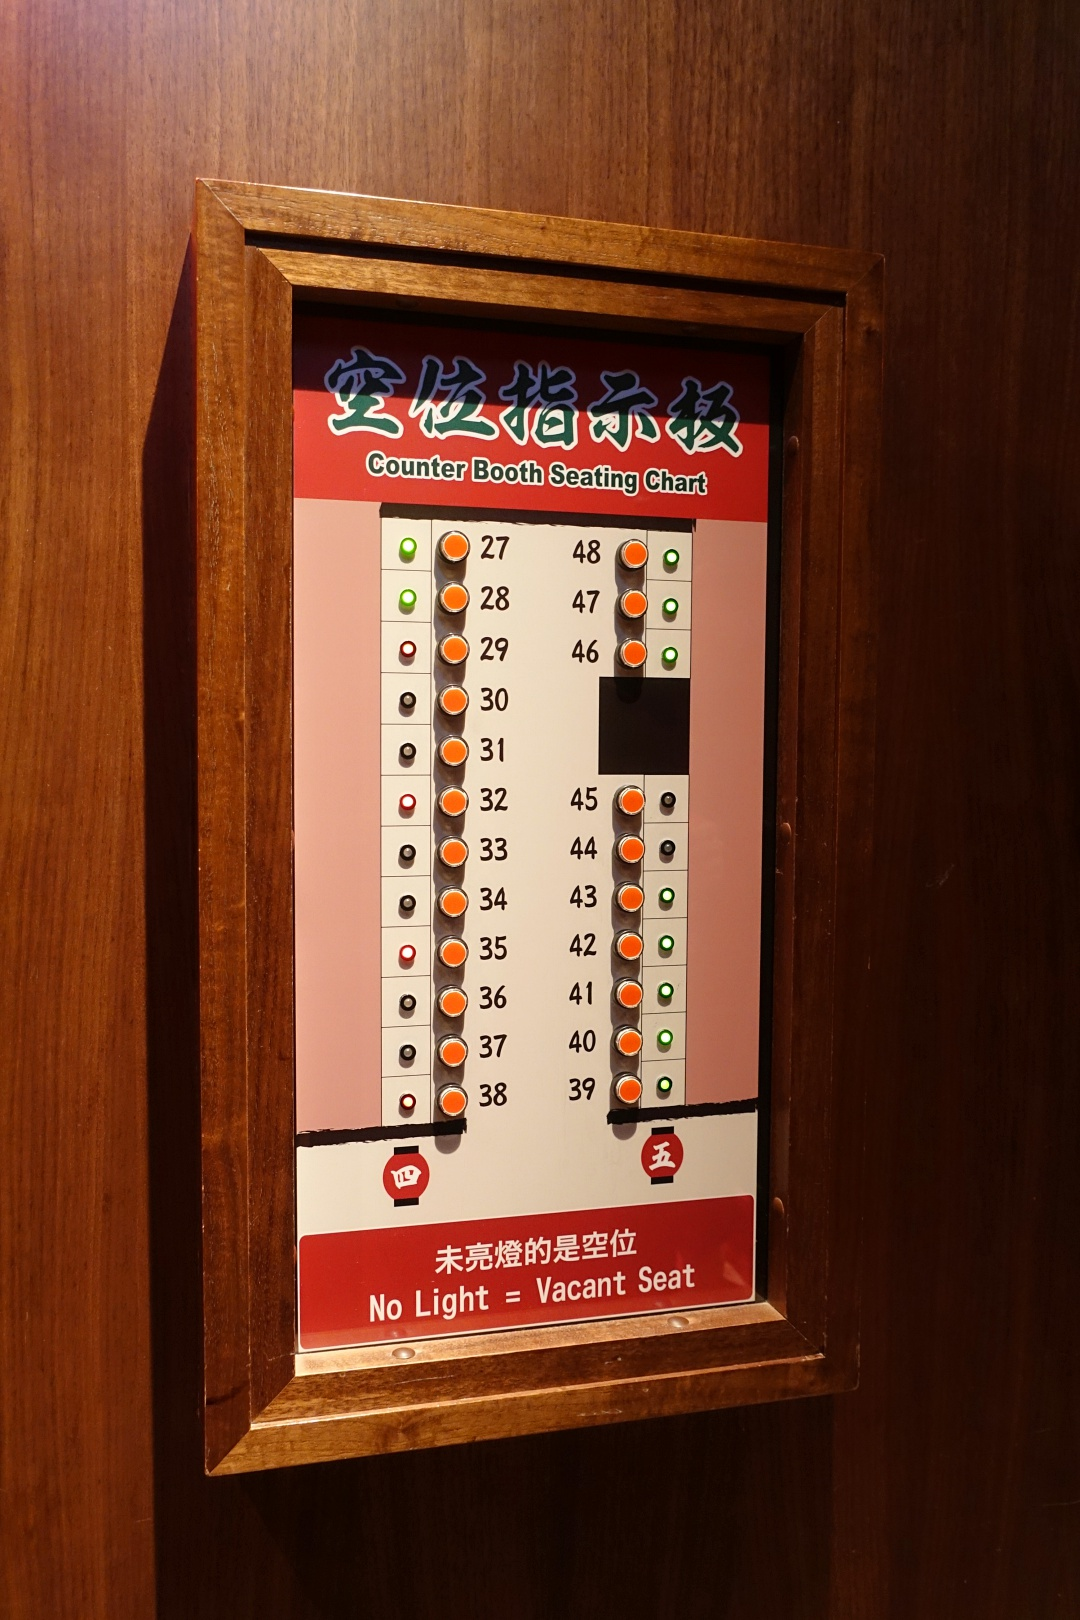 Taipei Ichiran 一蘭拉麵 - Counter Booth Seating Chart | joanne-khoo.com